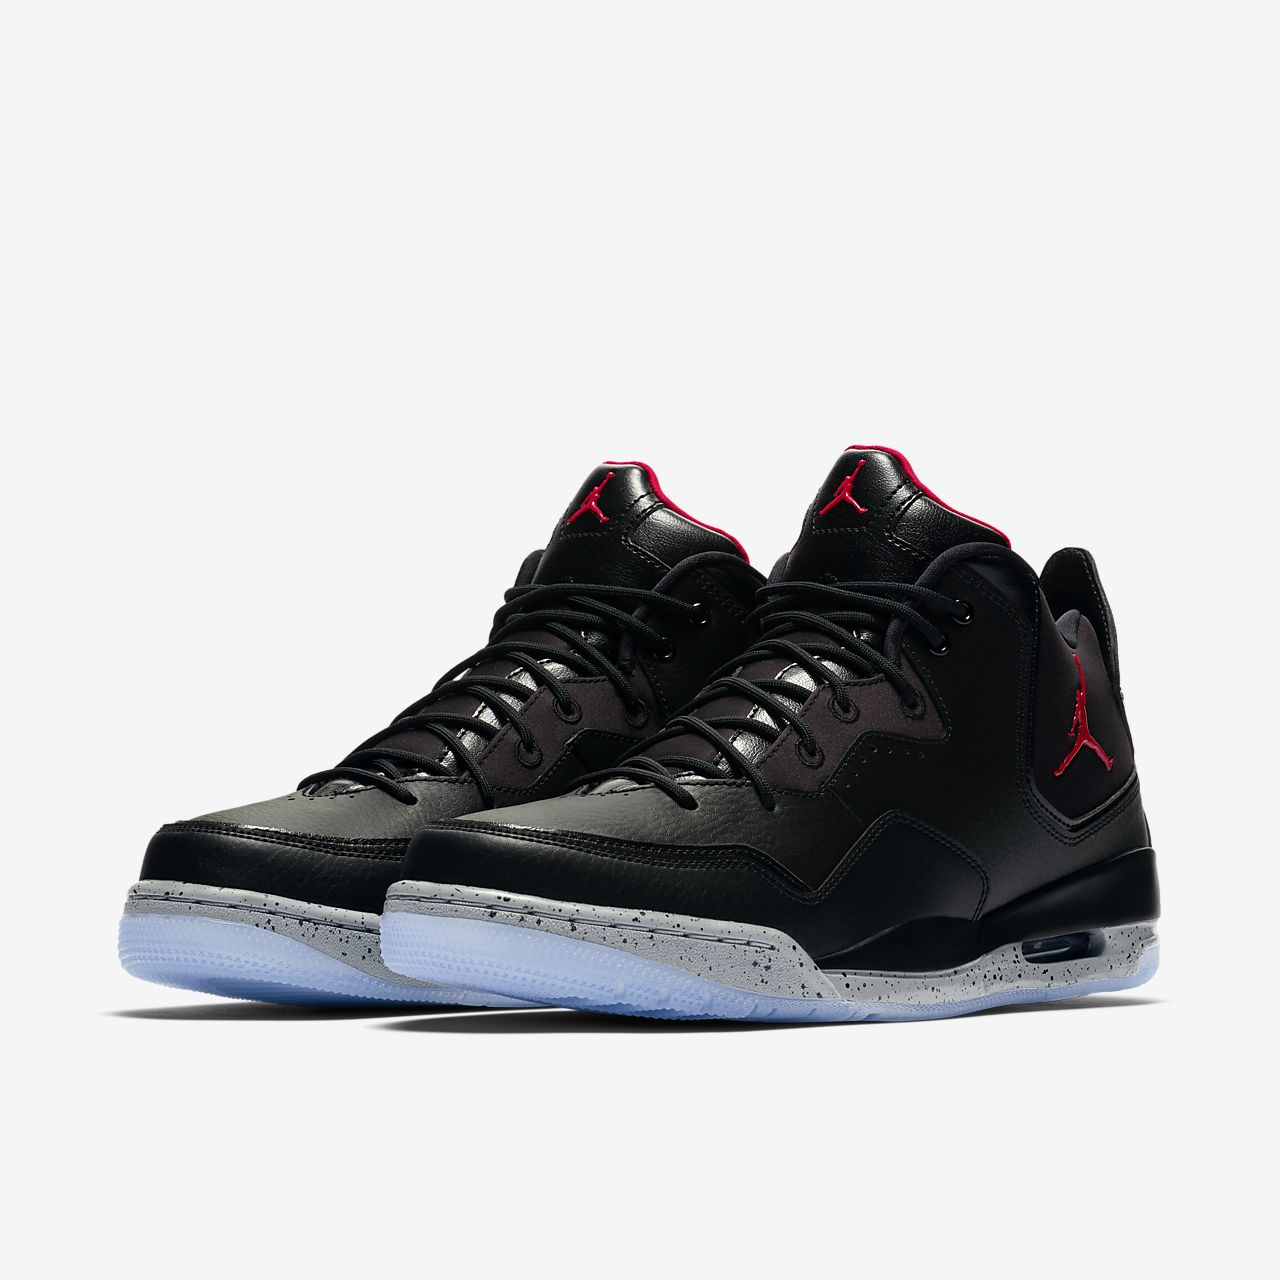 57c8a2d297a Jordan Courtside 23 Men s Shoe. Nike.com NZ